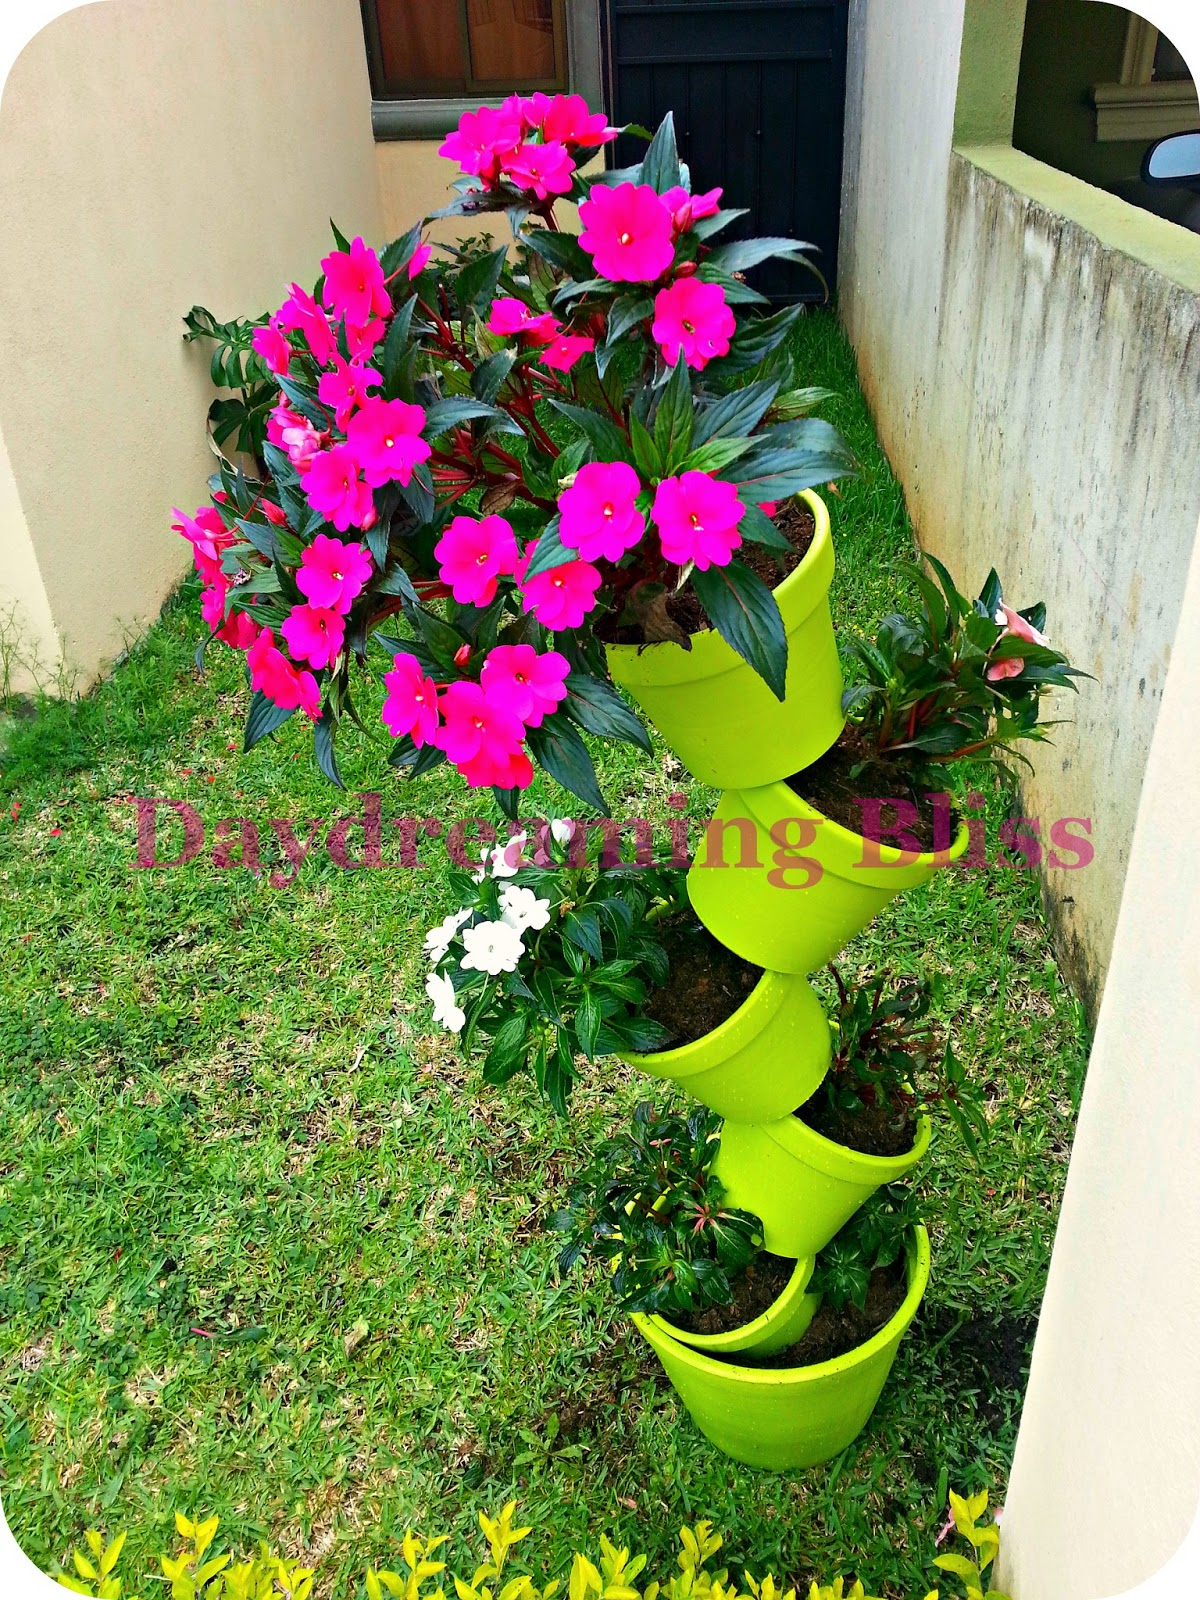 Daydreaming Bliss & Daydreaming Bliss: Tipsy flower pot tower